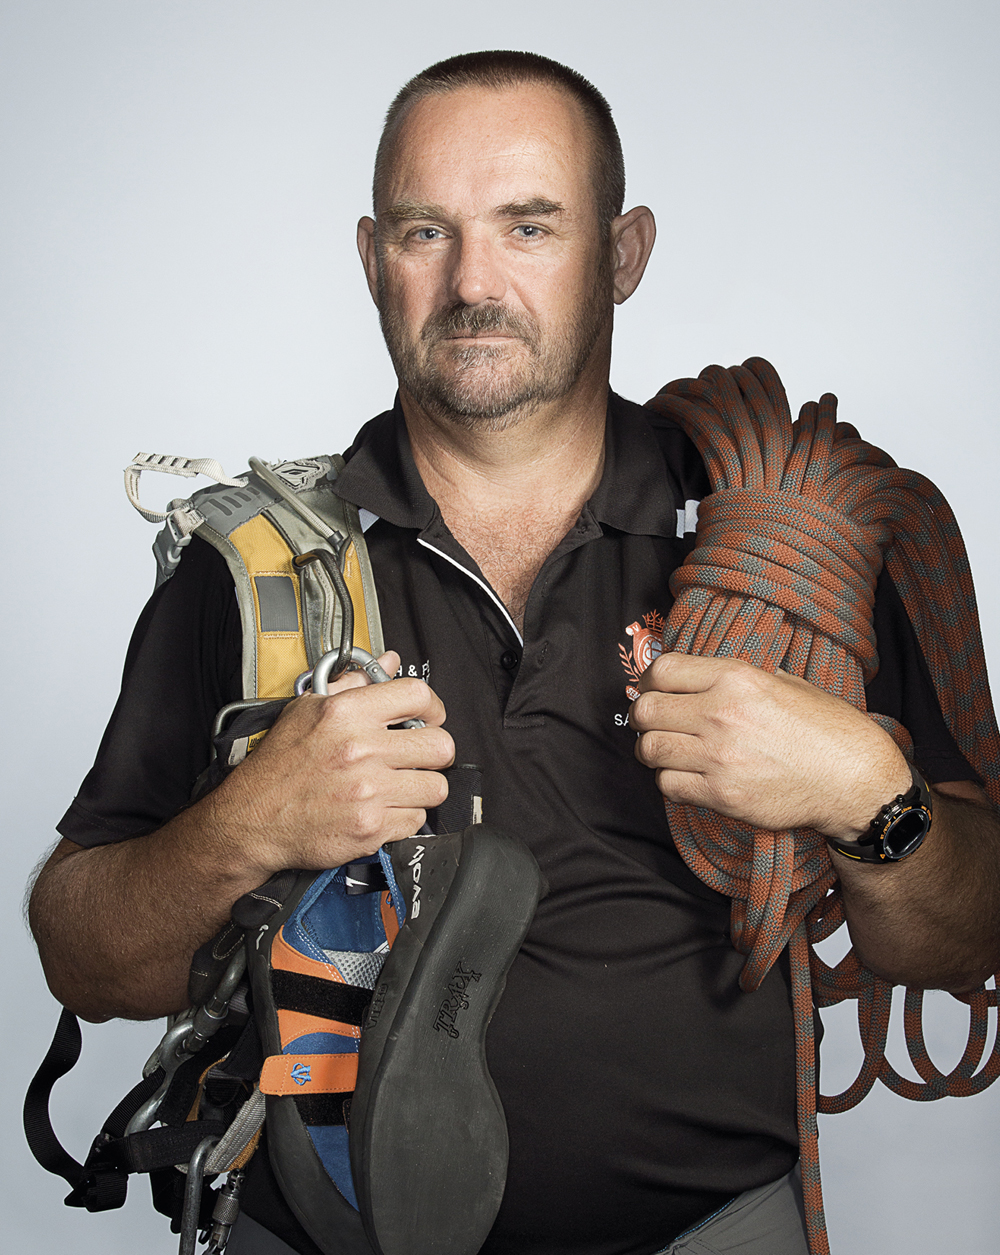 Portrait of Paul Delane holding climbing gear